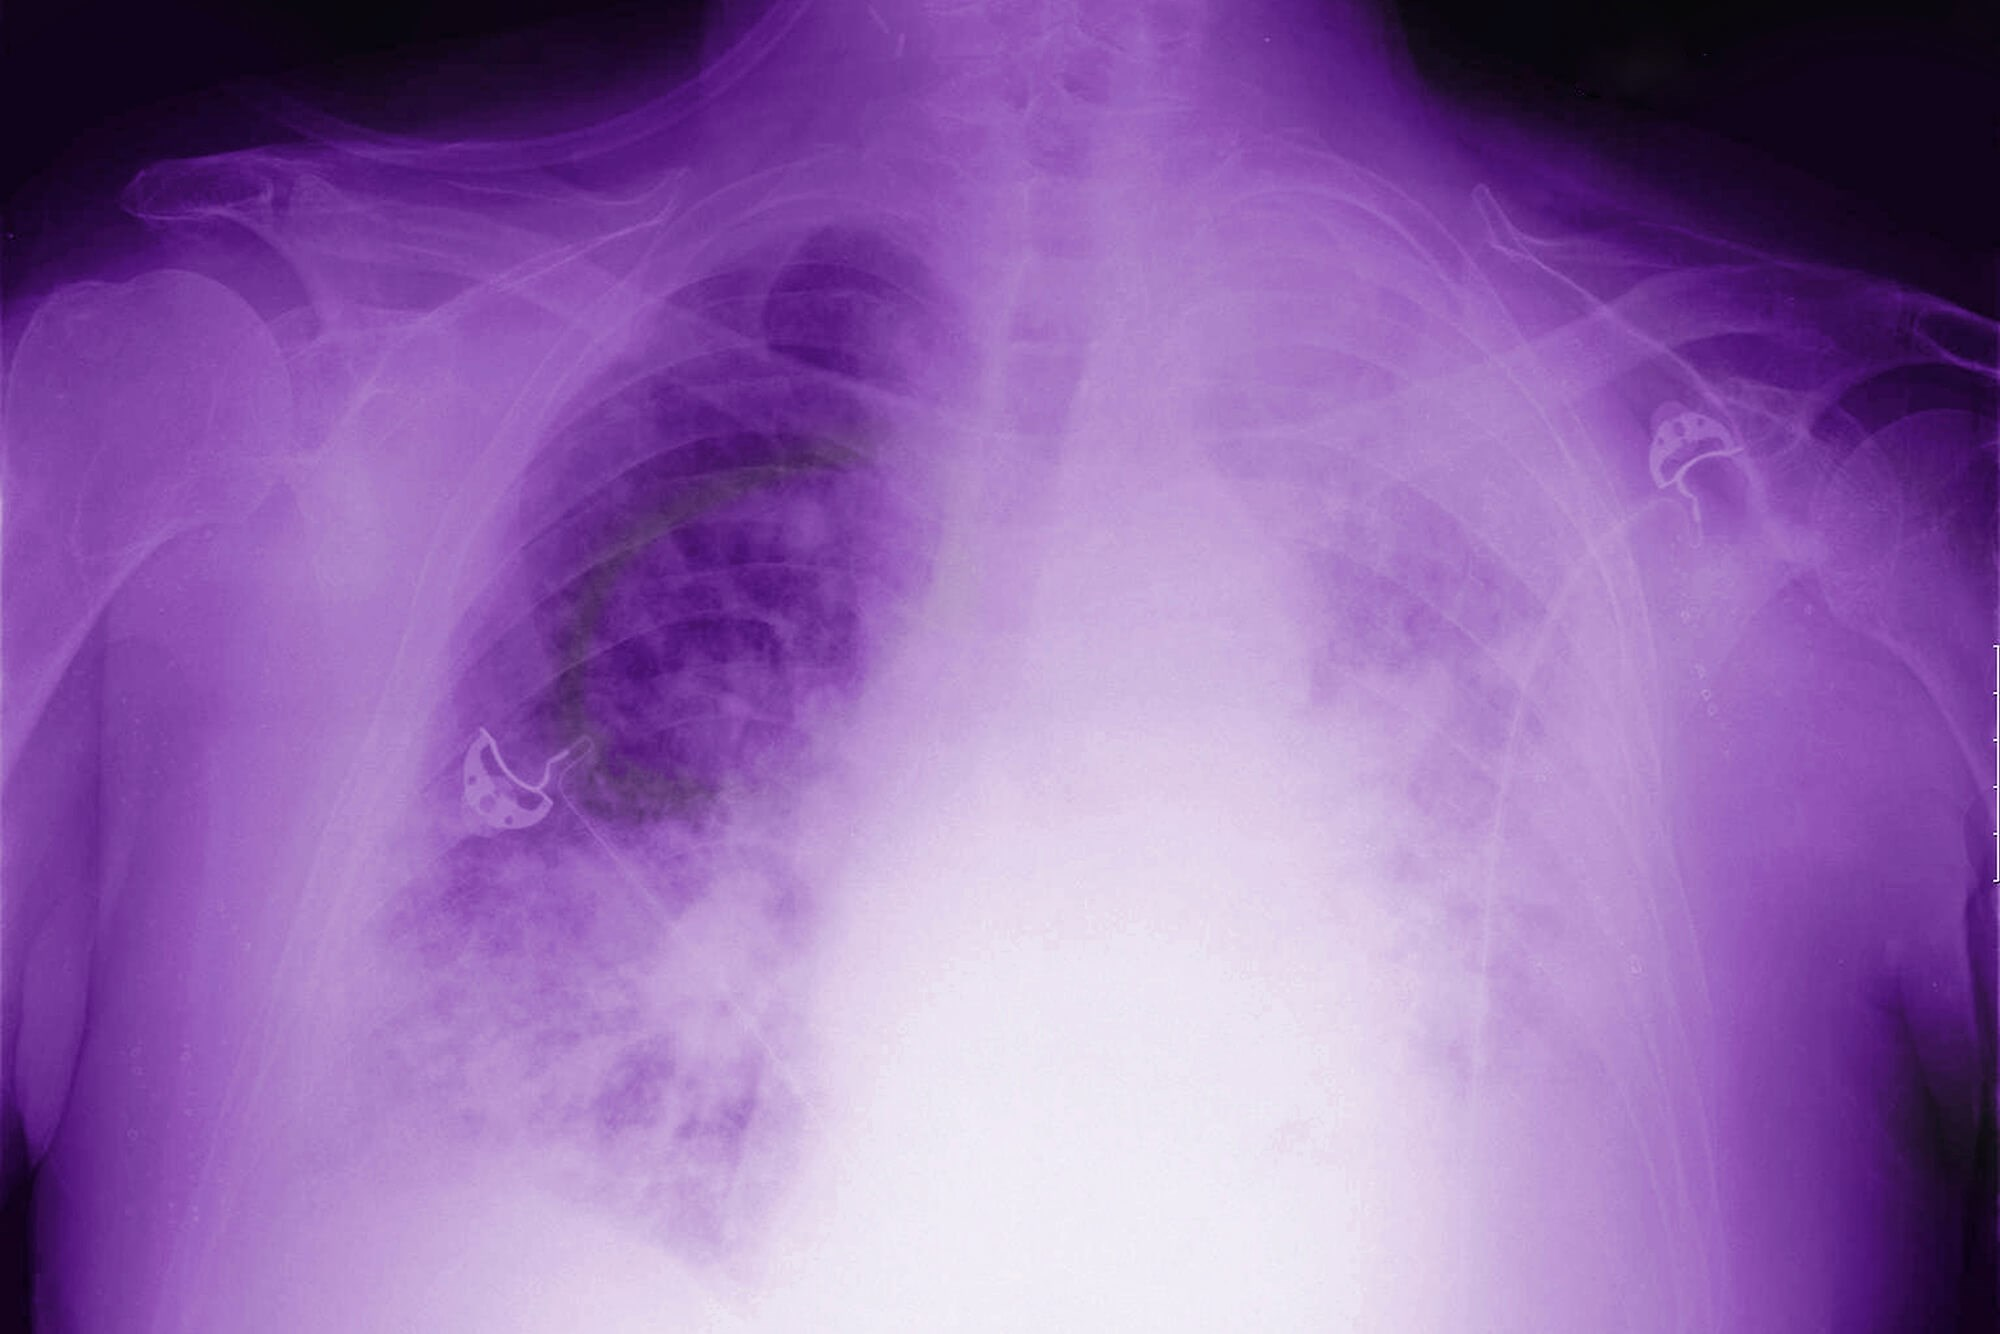 Healthcare Professionals Weigh In on Chemotherapy Use In Malignant Pleural Mesothelioma